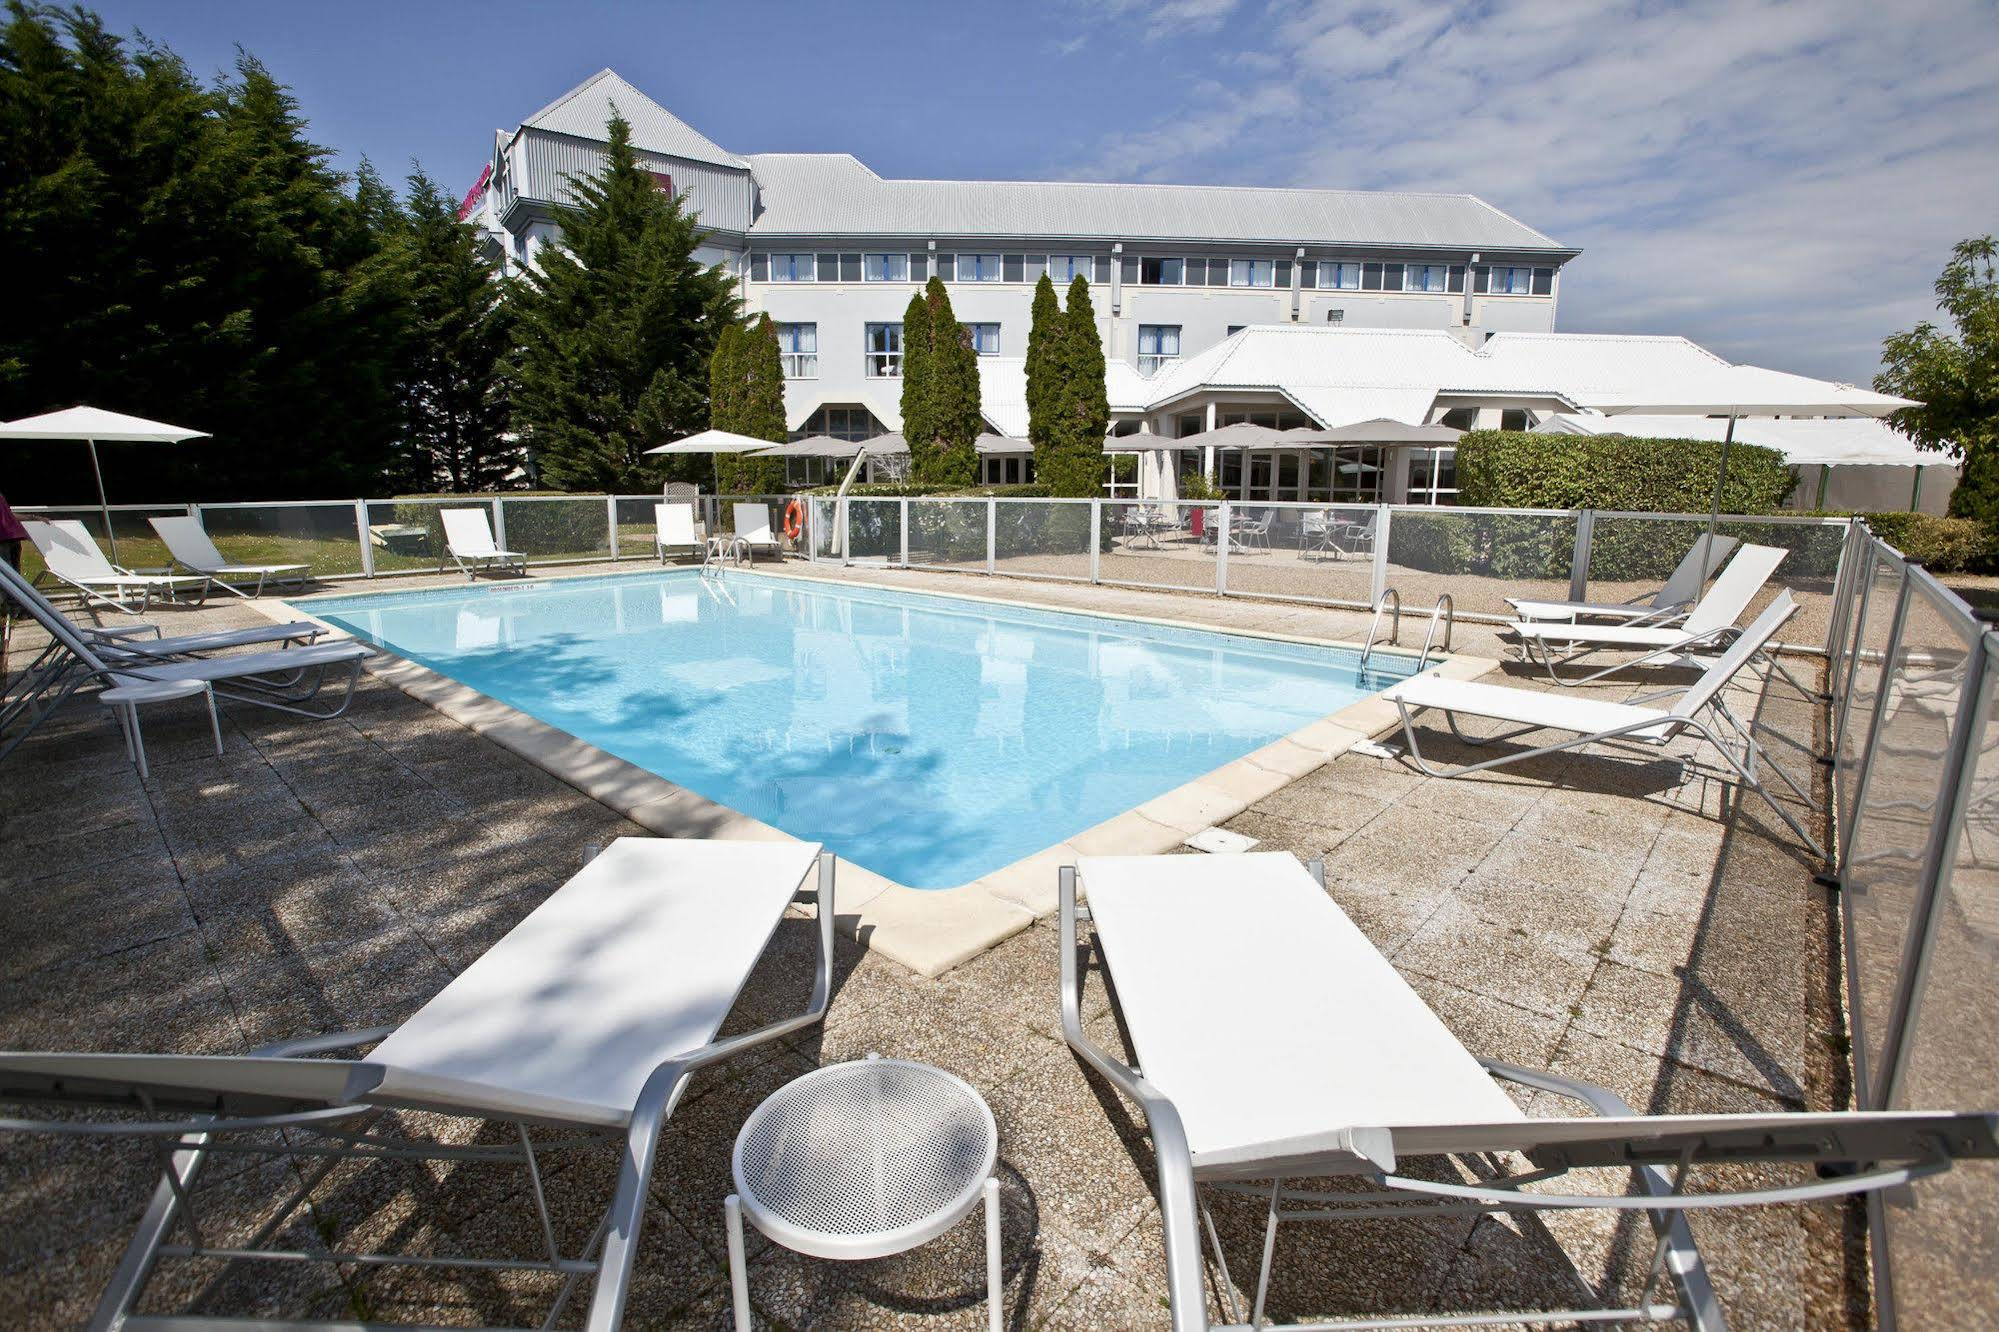 Inter Hotel La Terrasse Tours Tours Accommodation